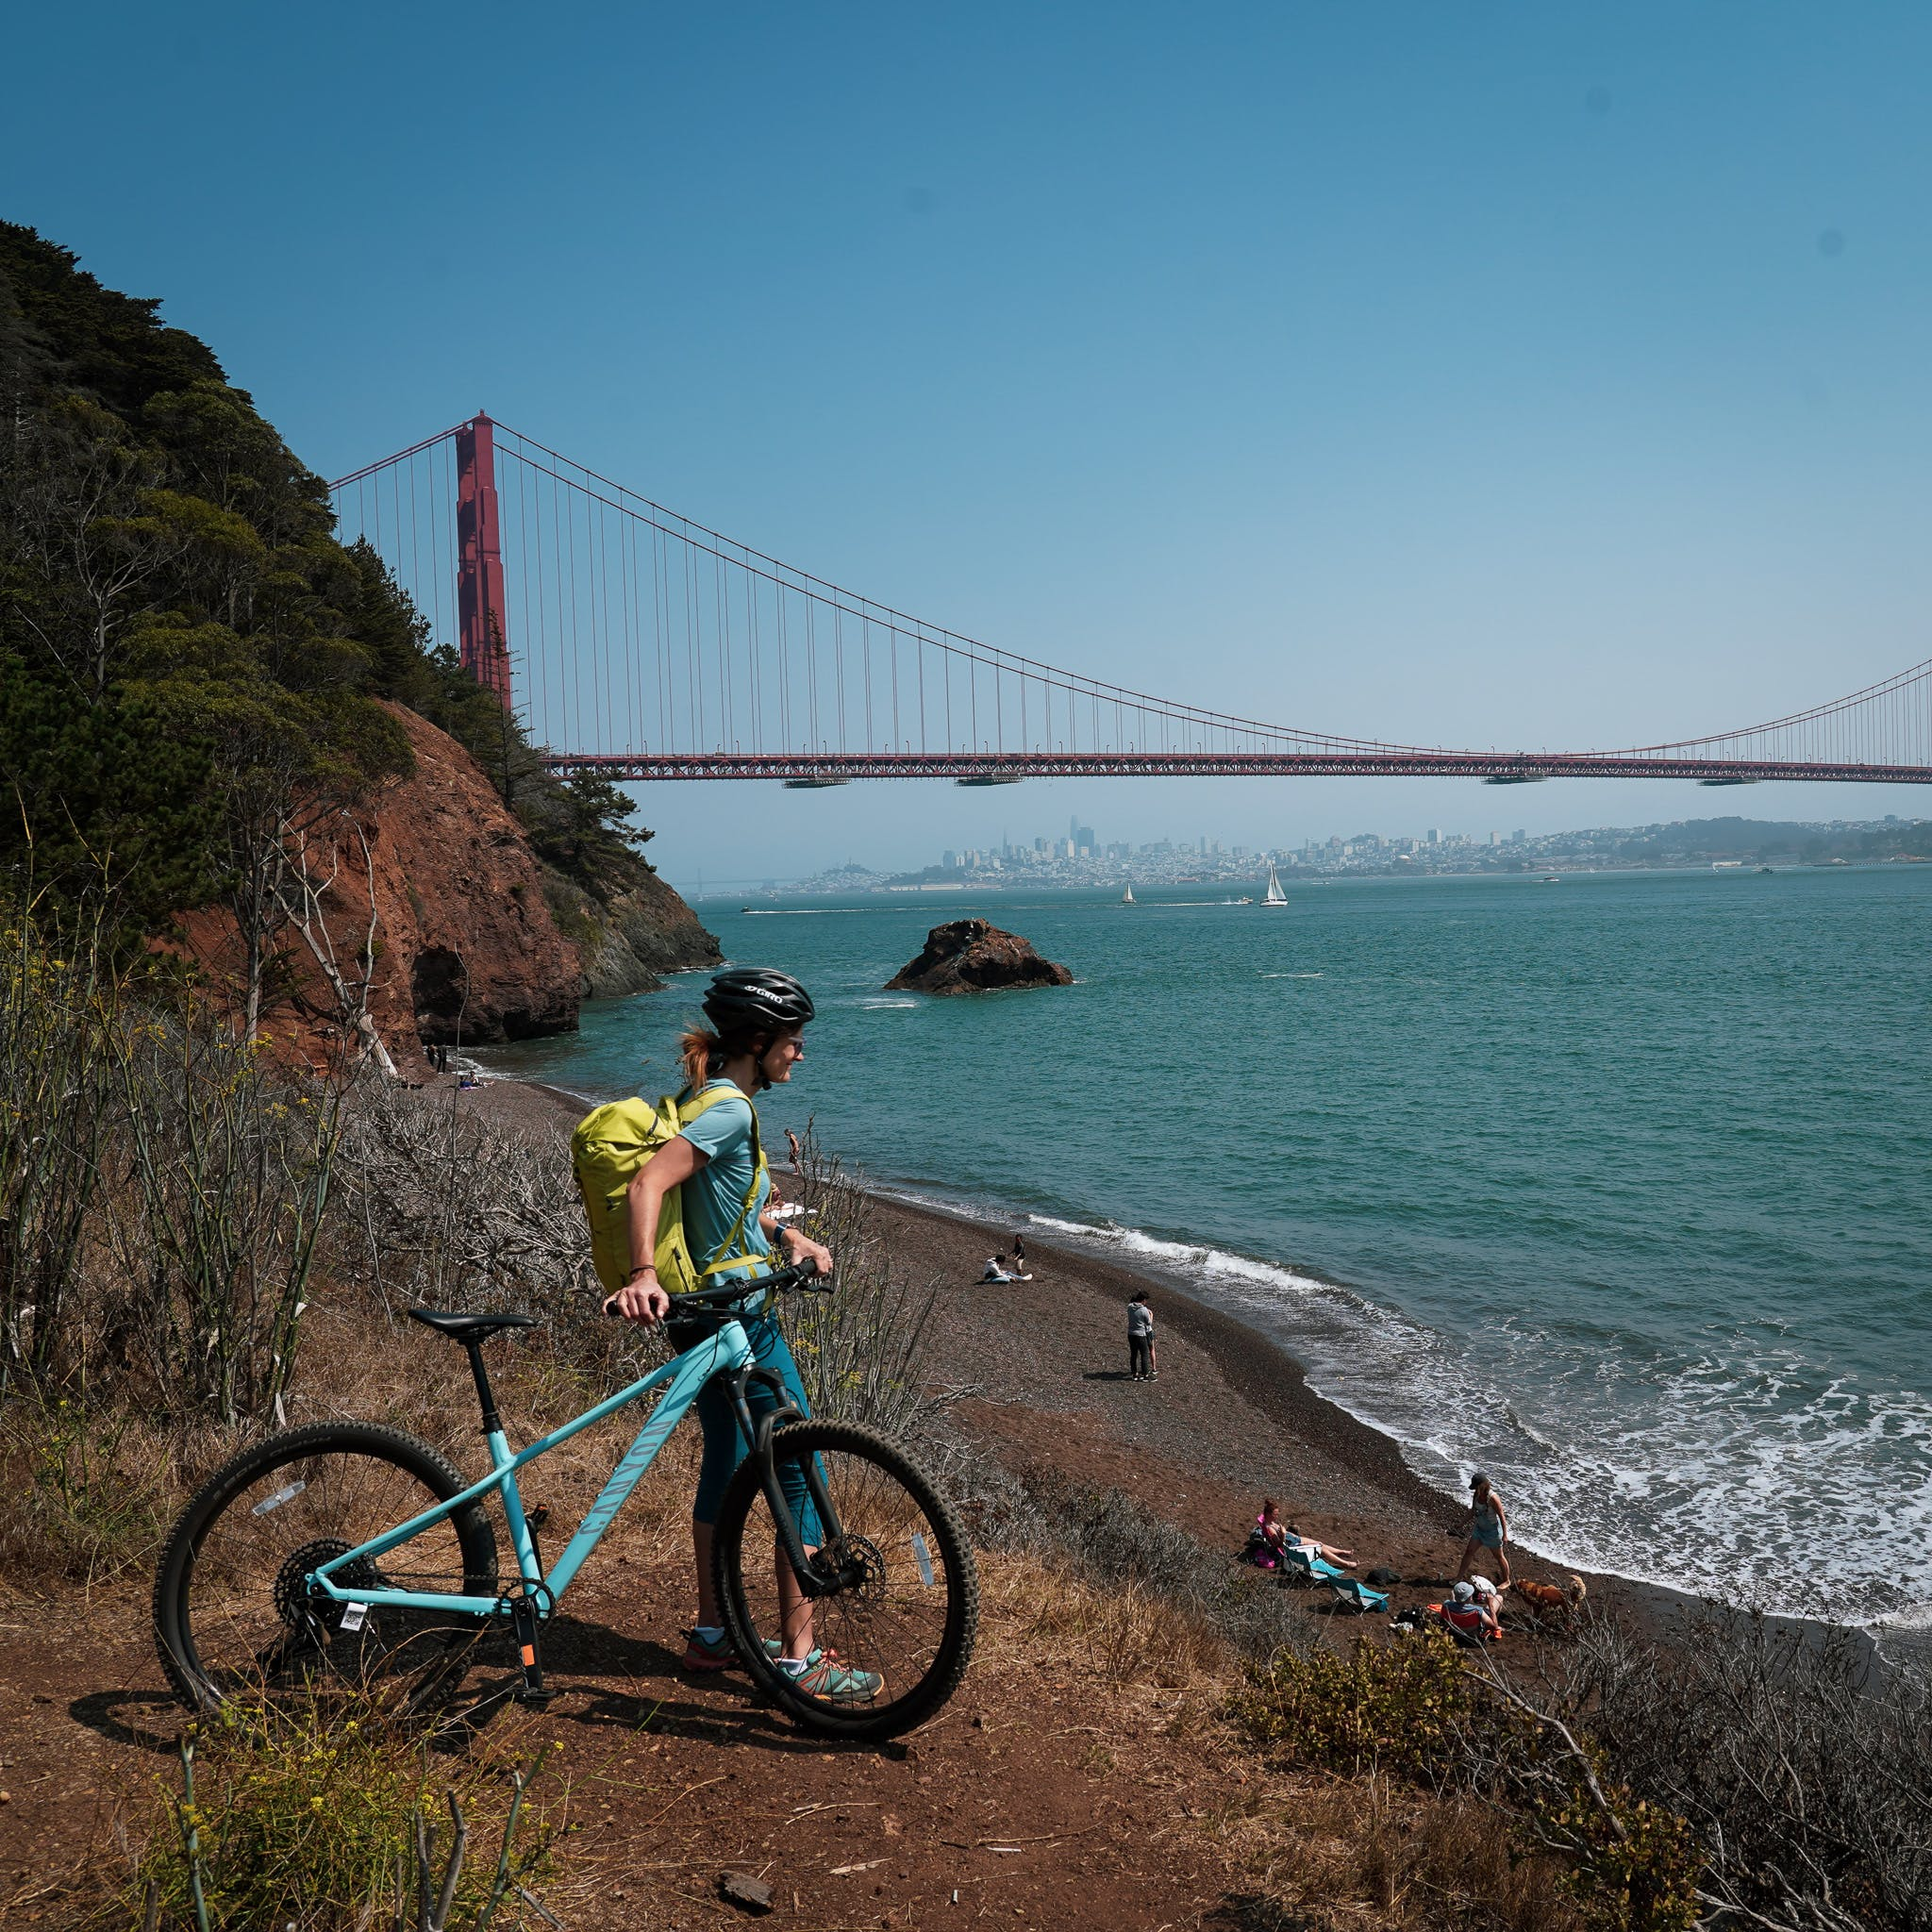 A biker with a yellow backpack standing at a vantage just above Kirby Cove Beach with the Golden Gate Bridge in the background